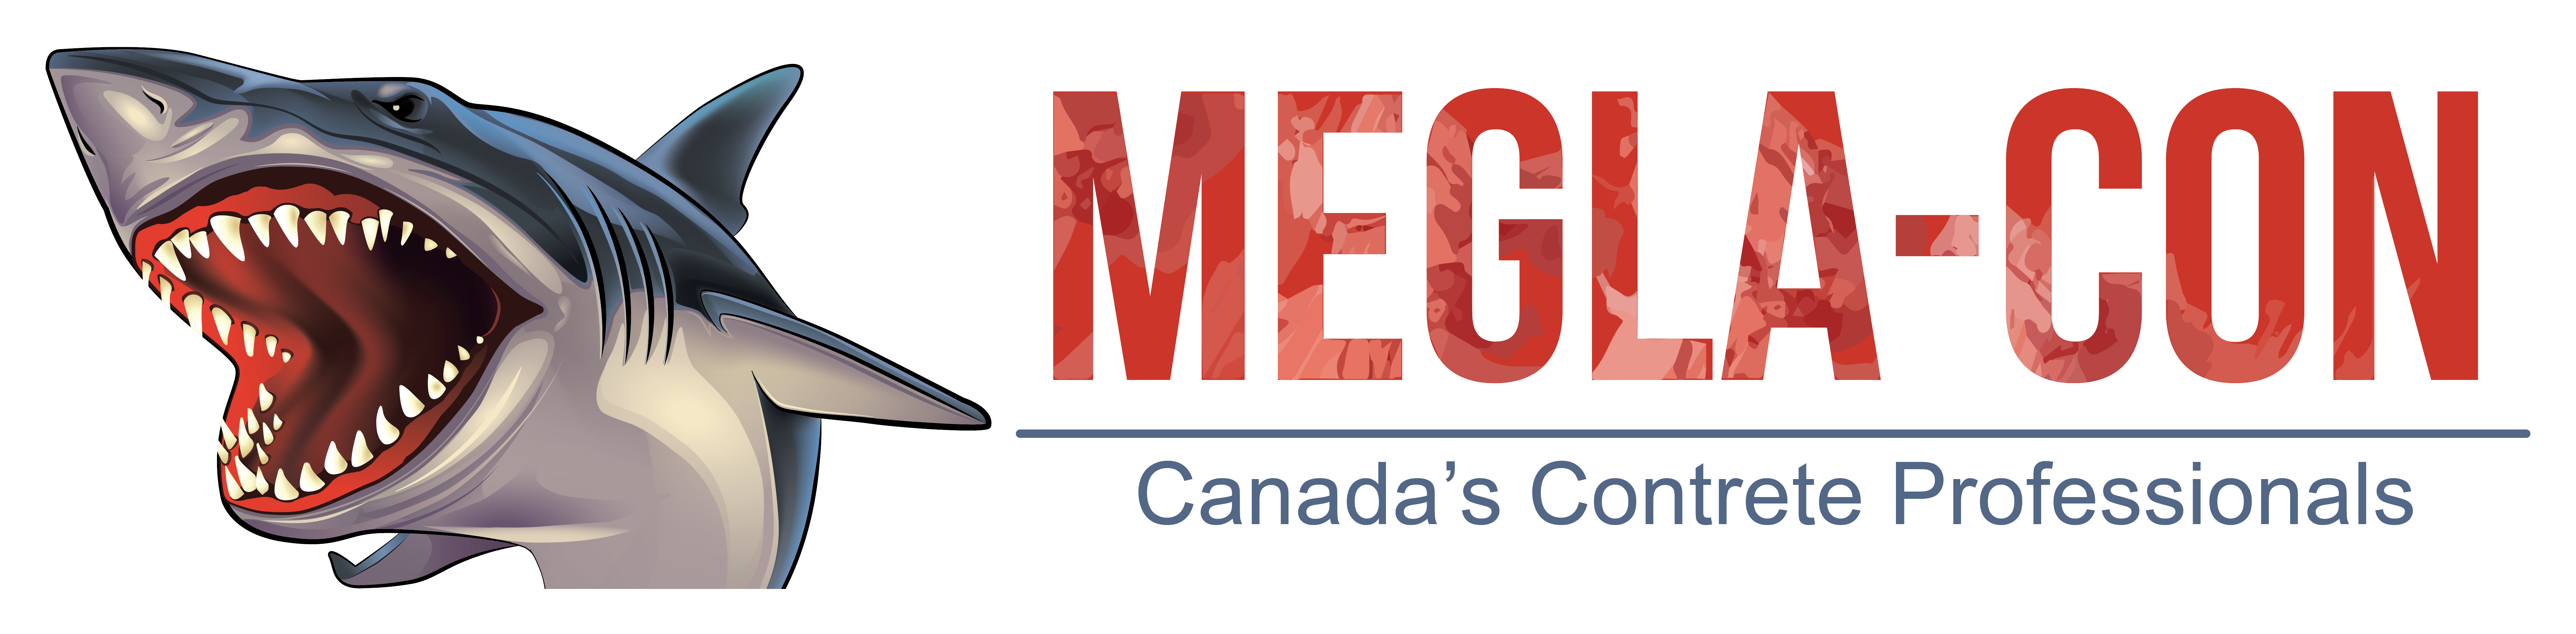 Megla-Con Concrete & Construction